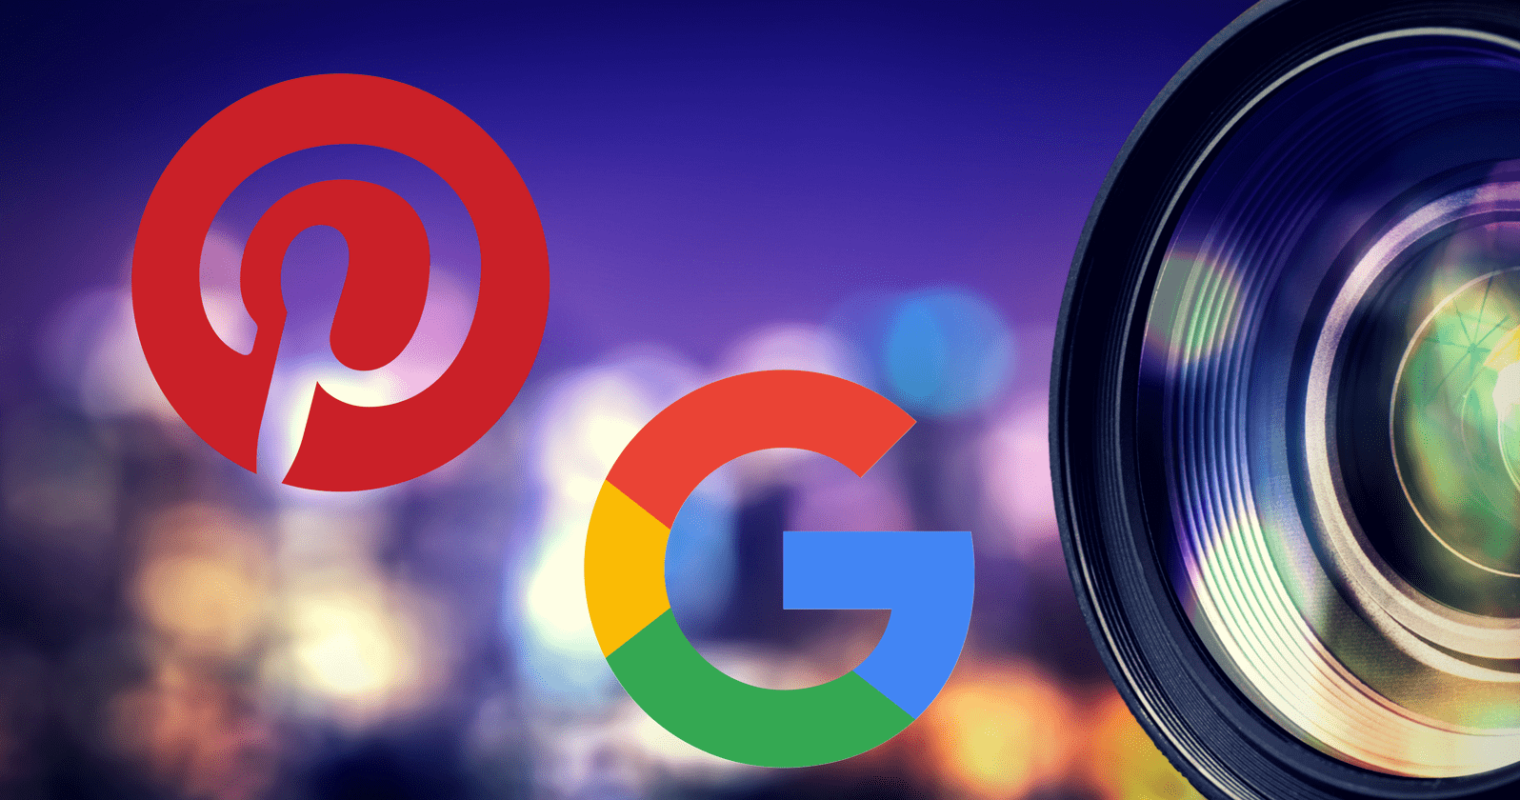 How to Optimize for Next-Level Image Search